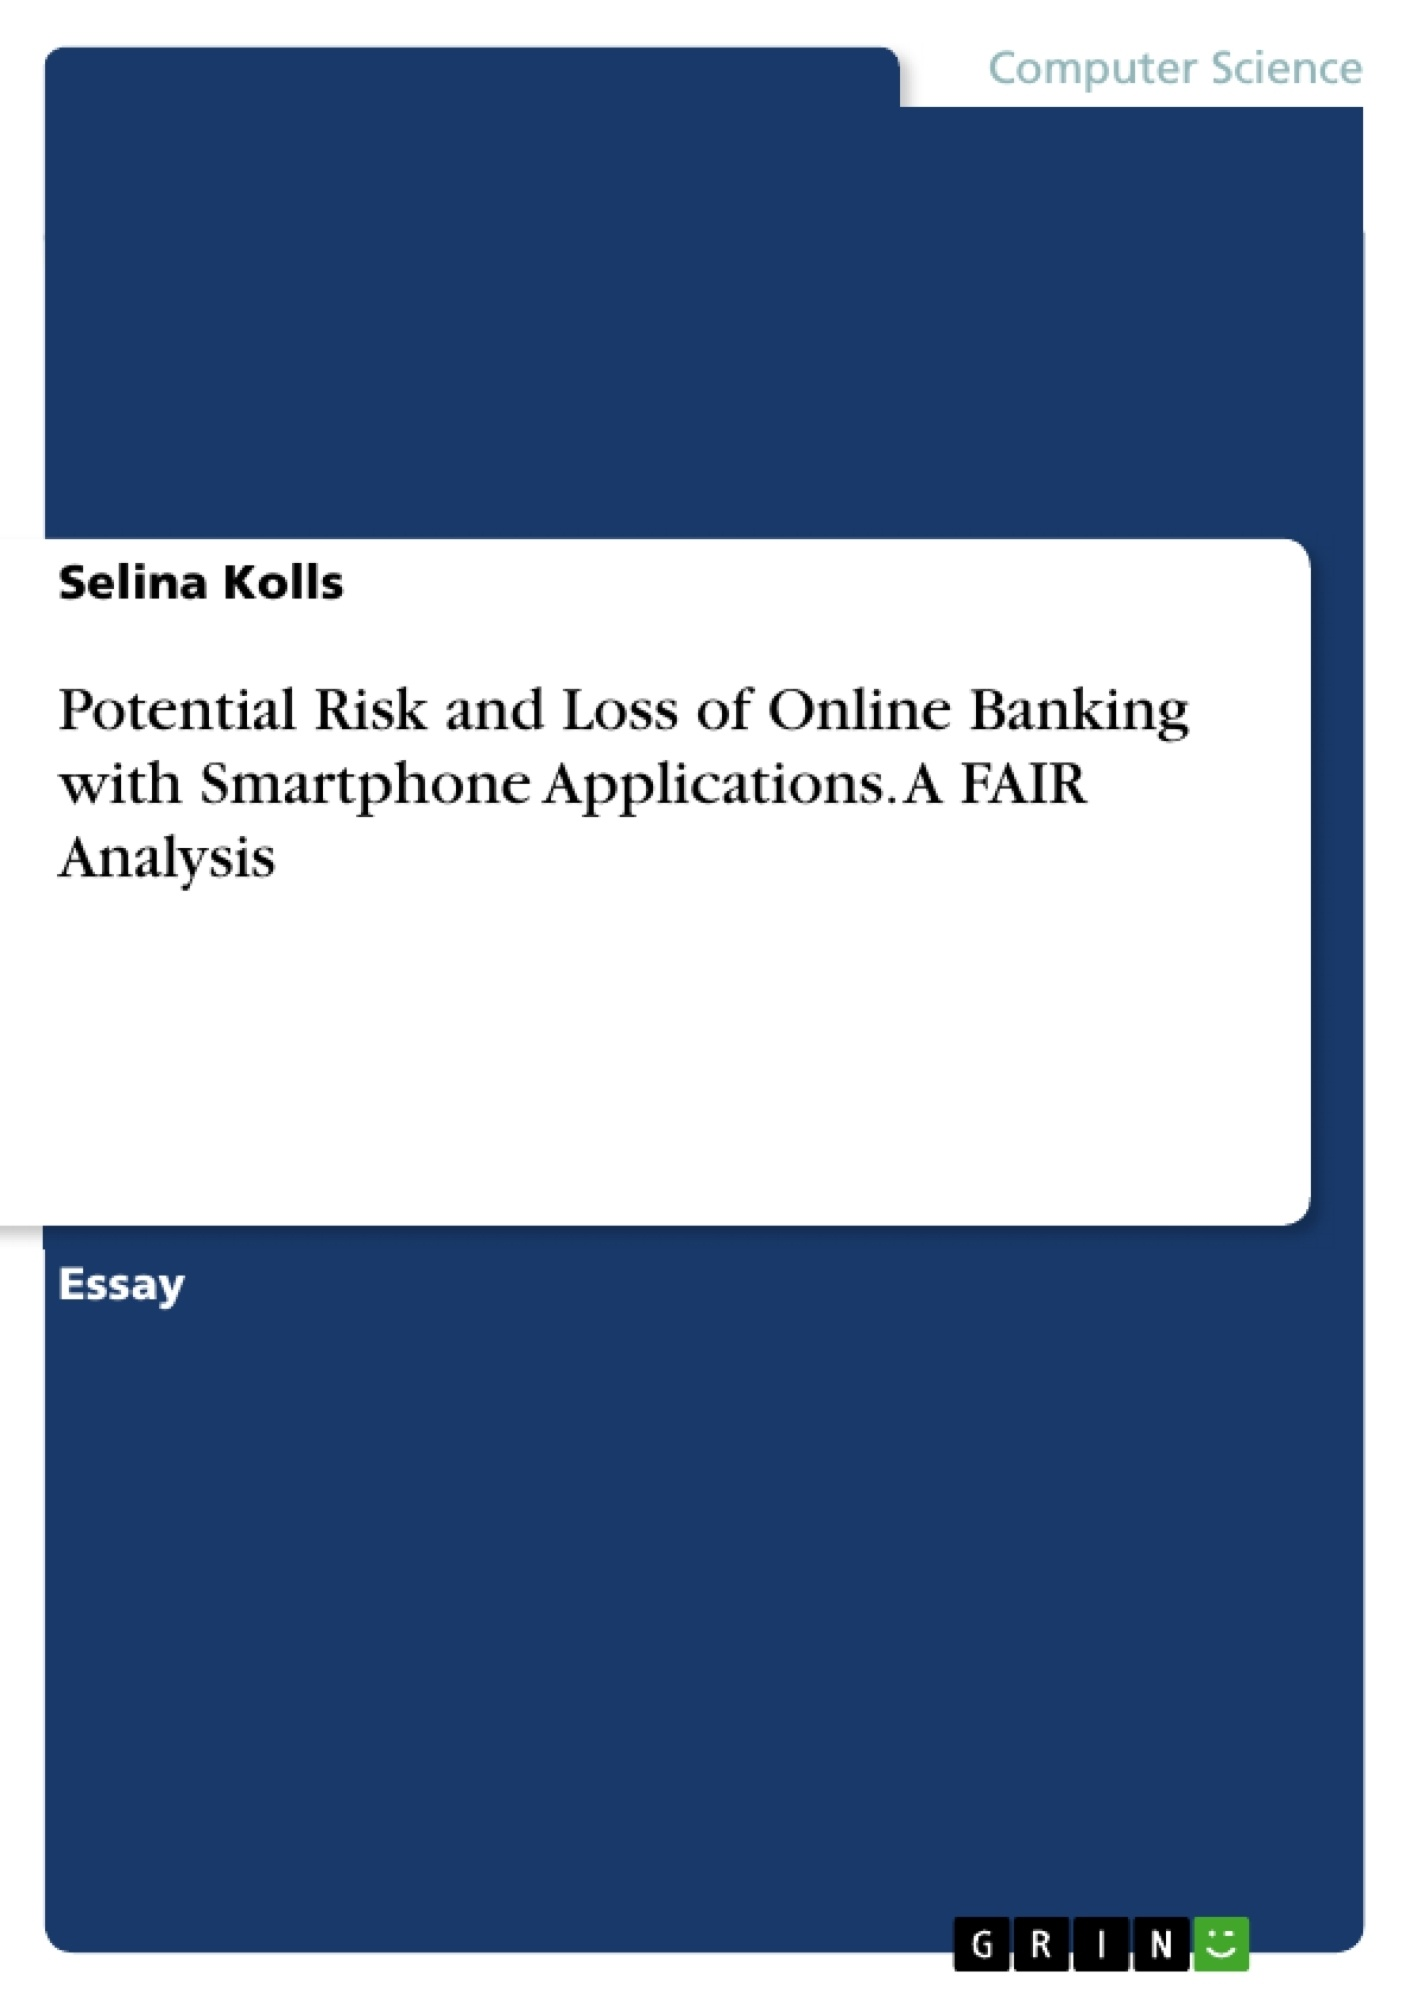 Title: Potential Risk and Loss of Online Banking with Smartphone Applications. A FAIR Analysis